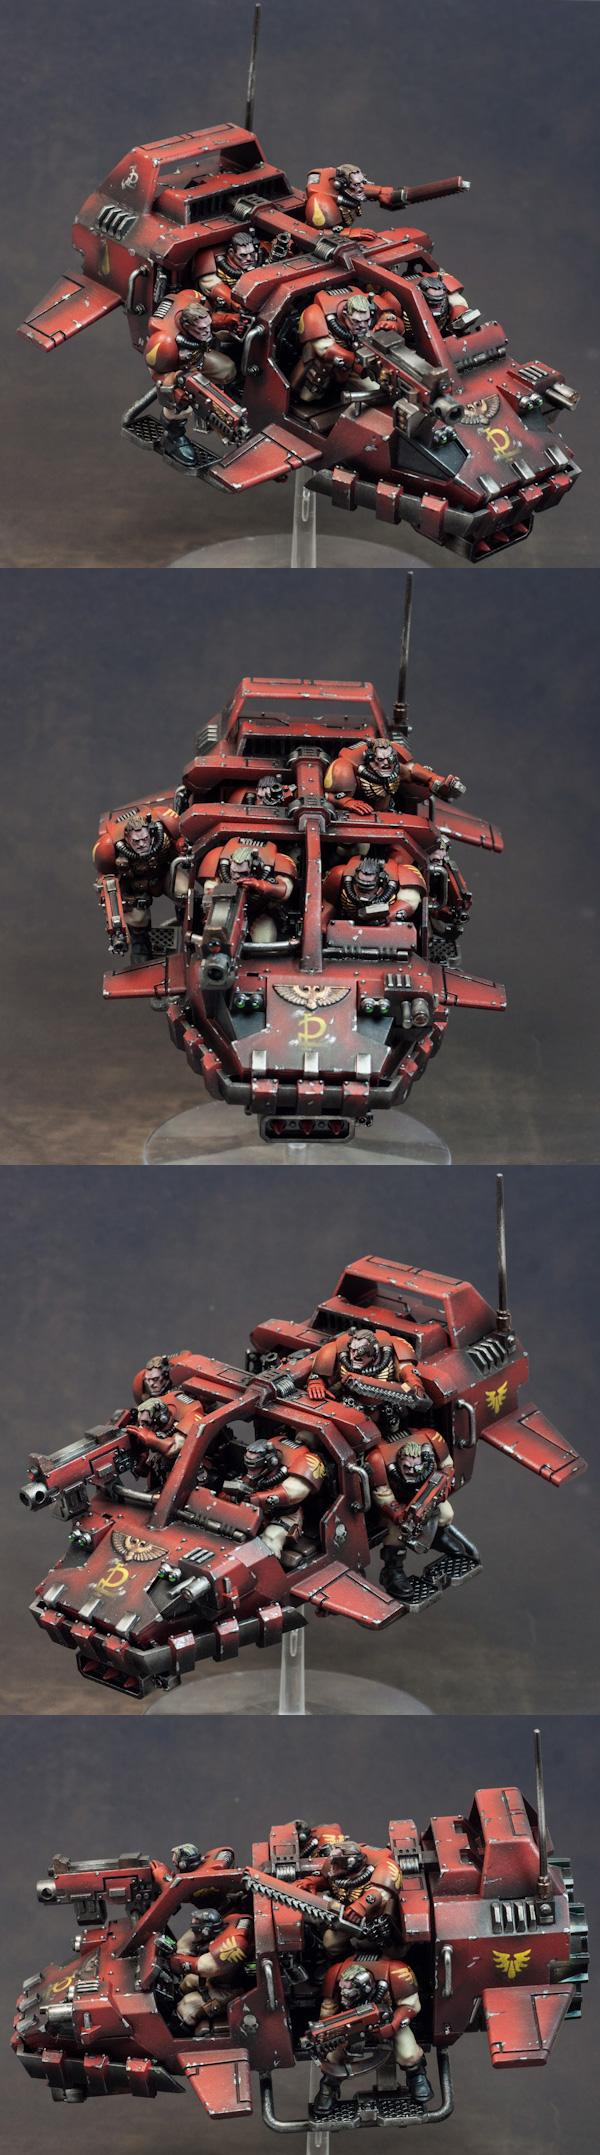 Blood Angels, Bolter, Chain, Heavy, Land Speeder, Land Speeder Storm, Scouts, Storm, Sword